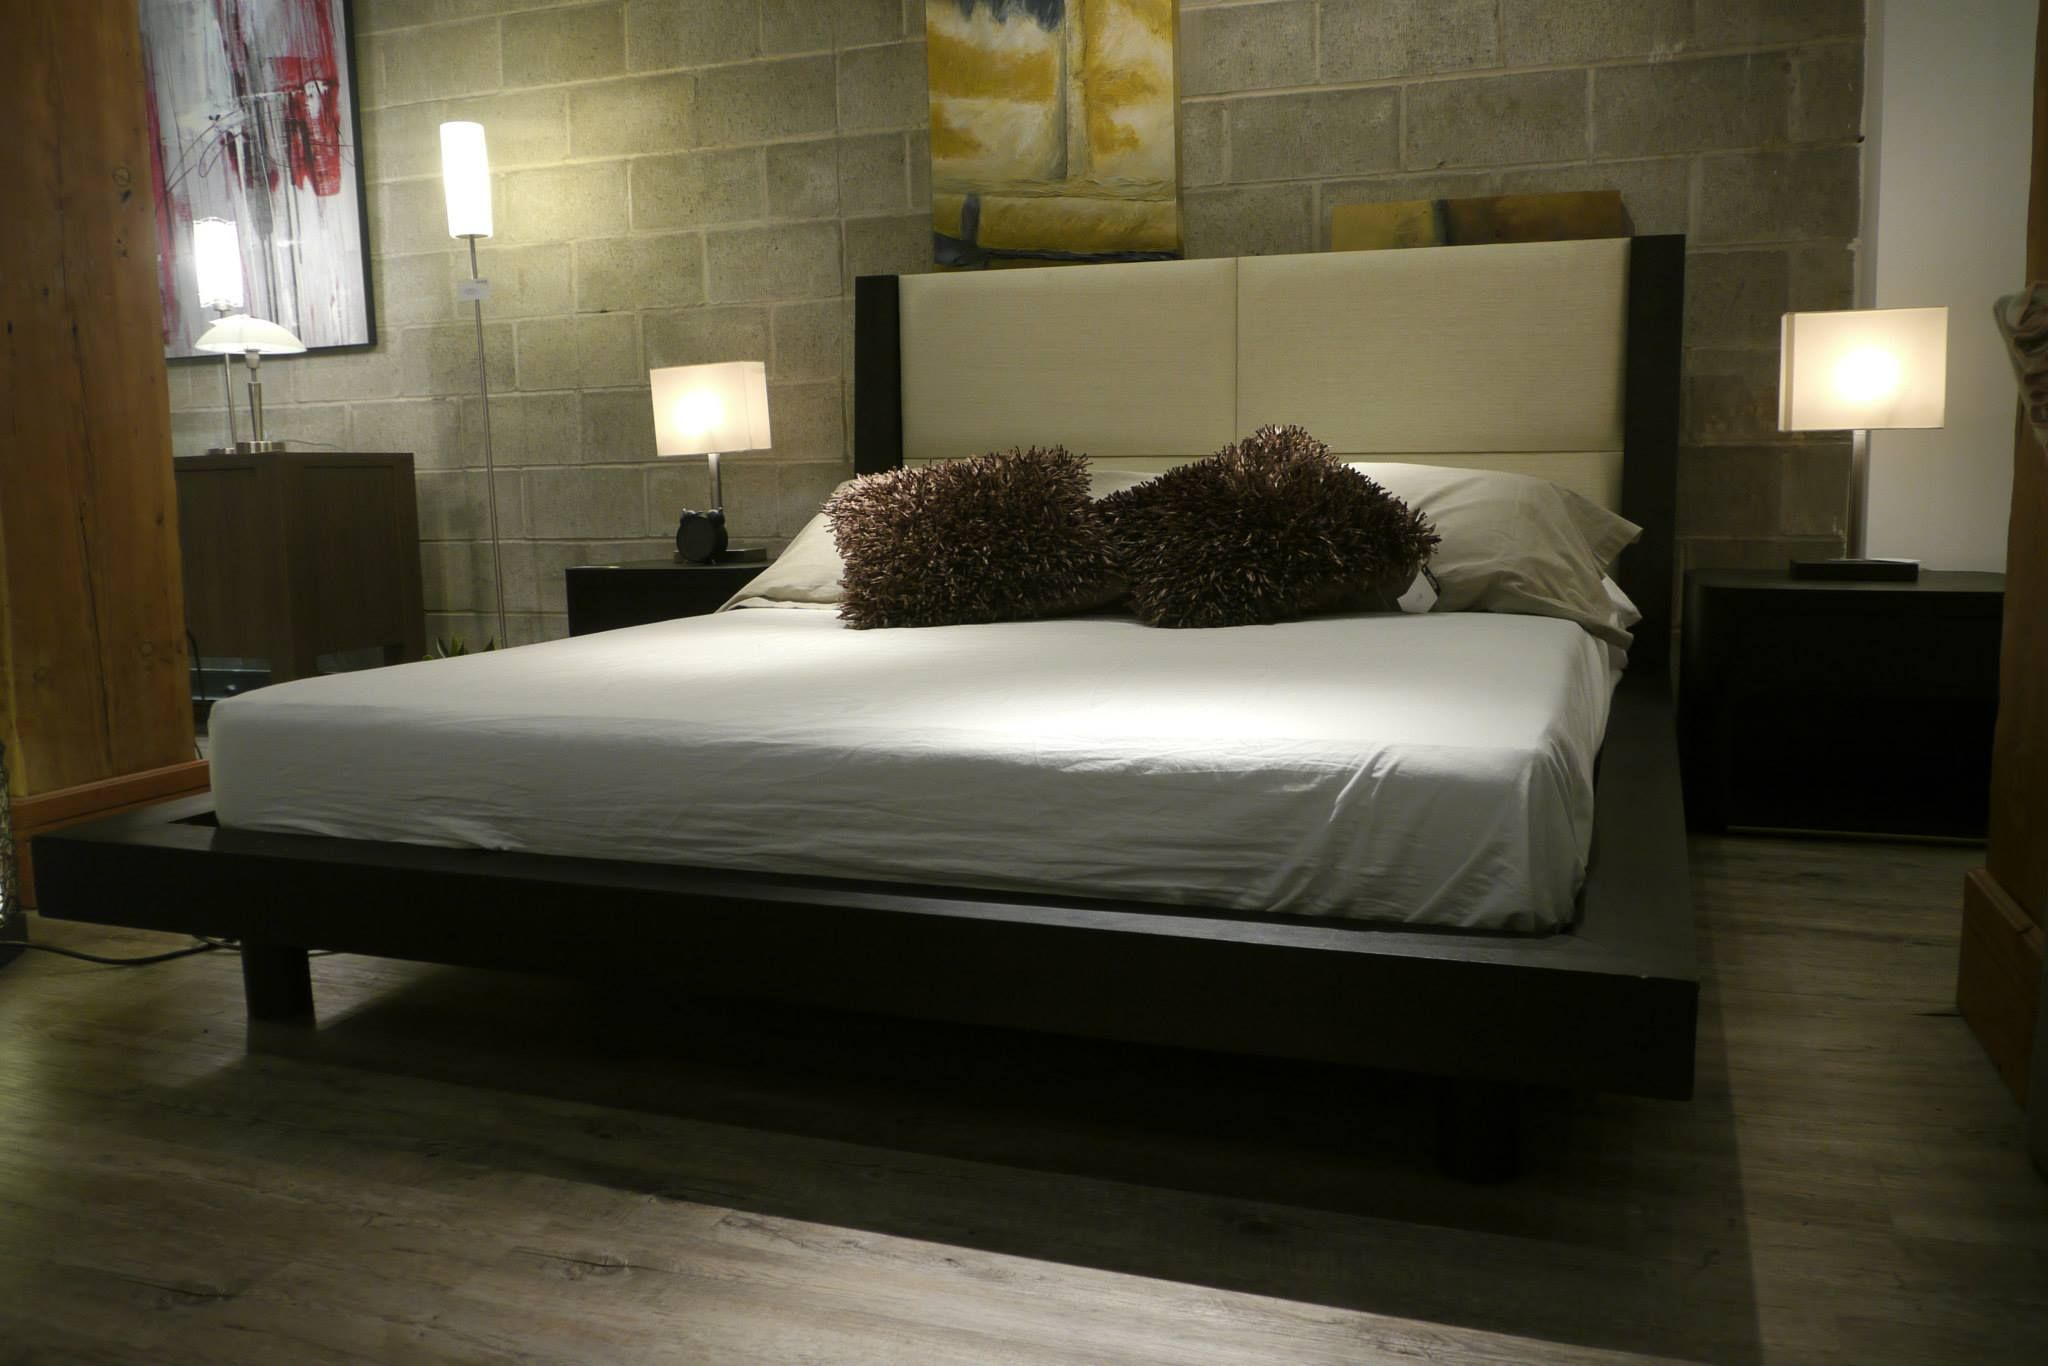 Zientte Muebles contemporaneos | Camas / Bed Room | Pinterest